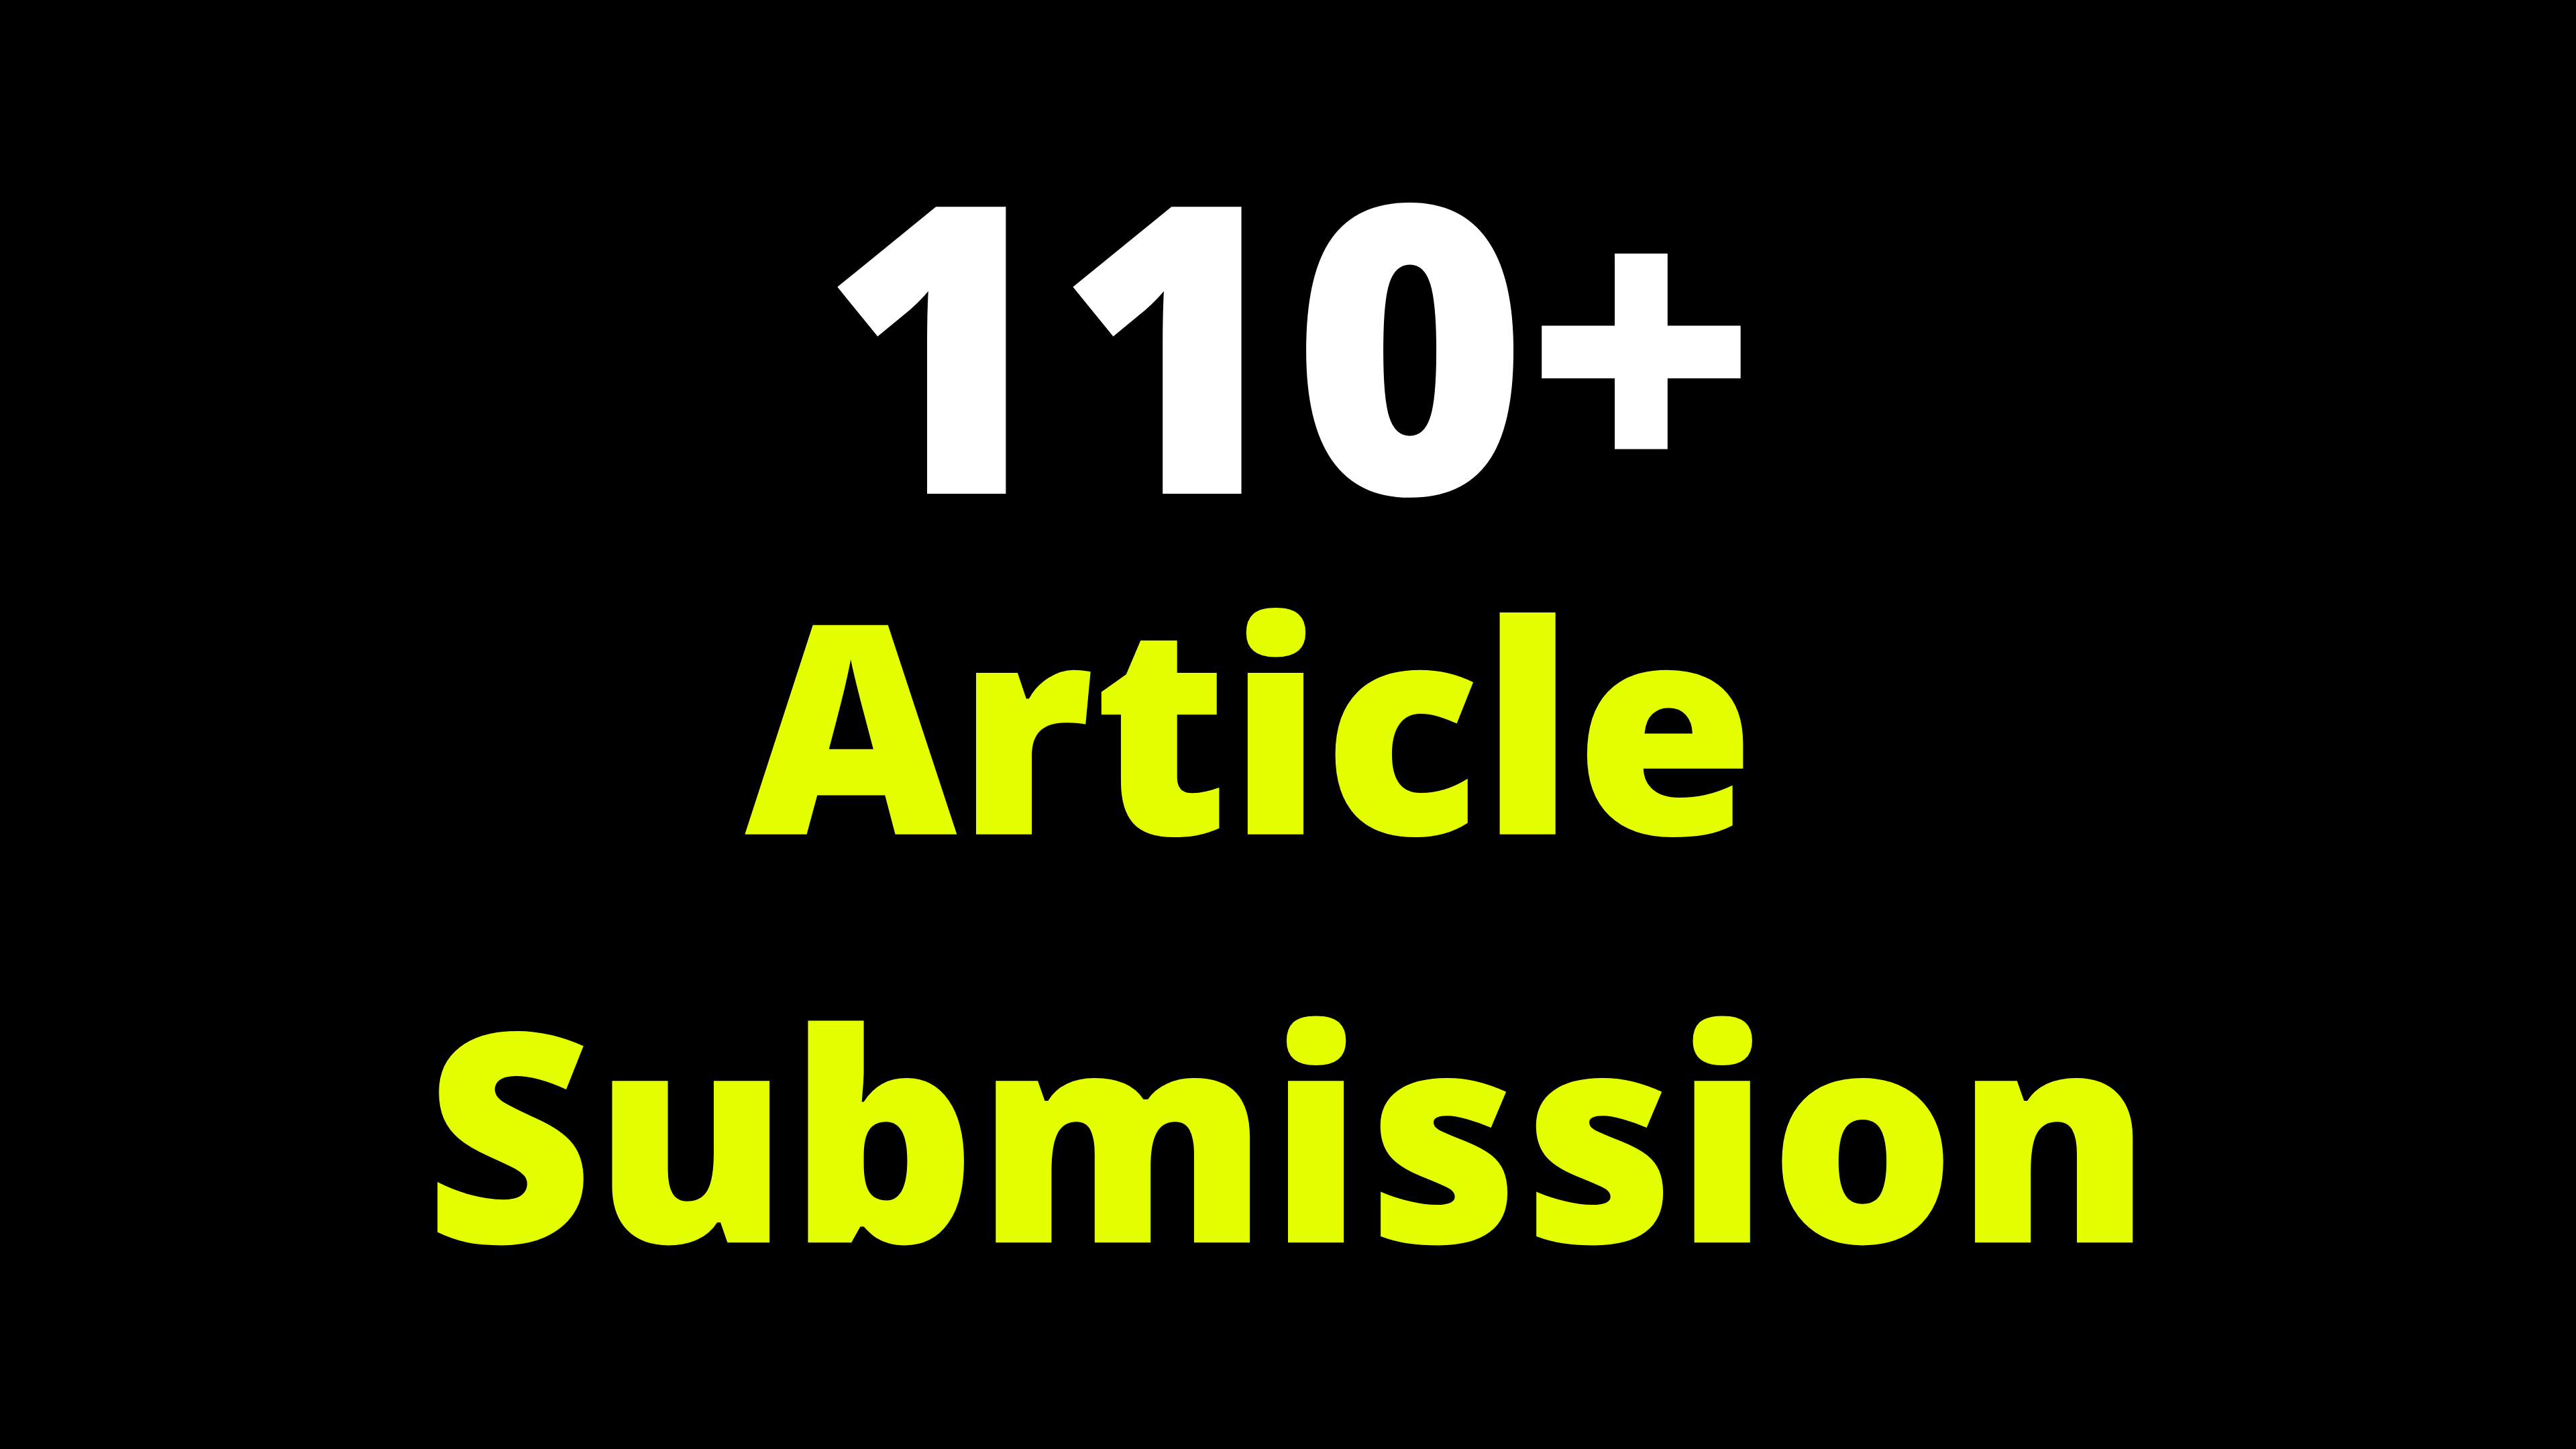 Get 100+ Article Directory Submission backlinks - Top Google Ranking